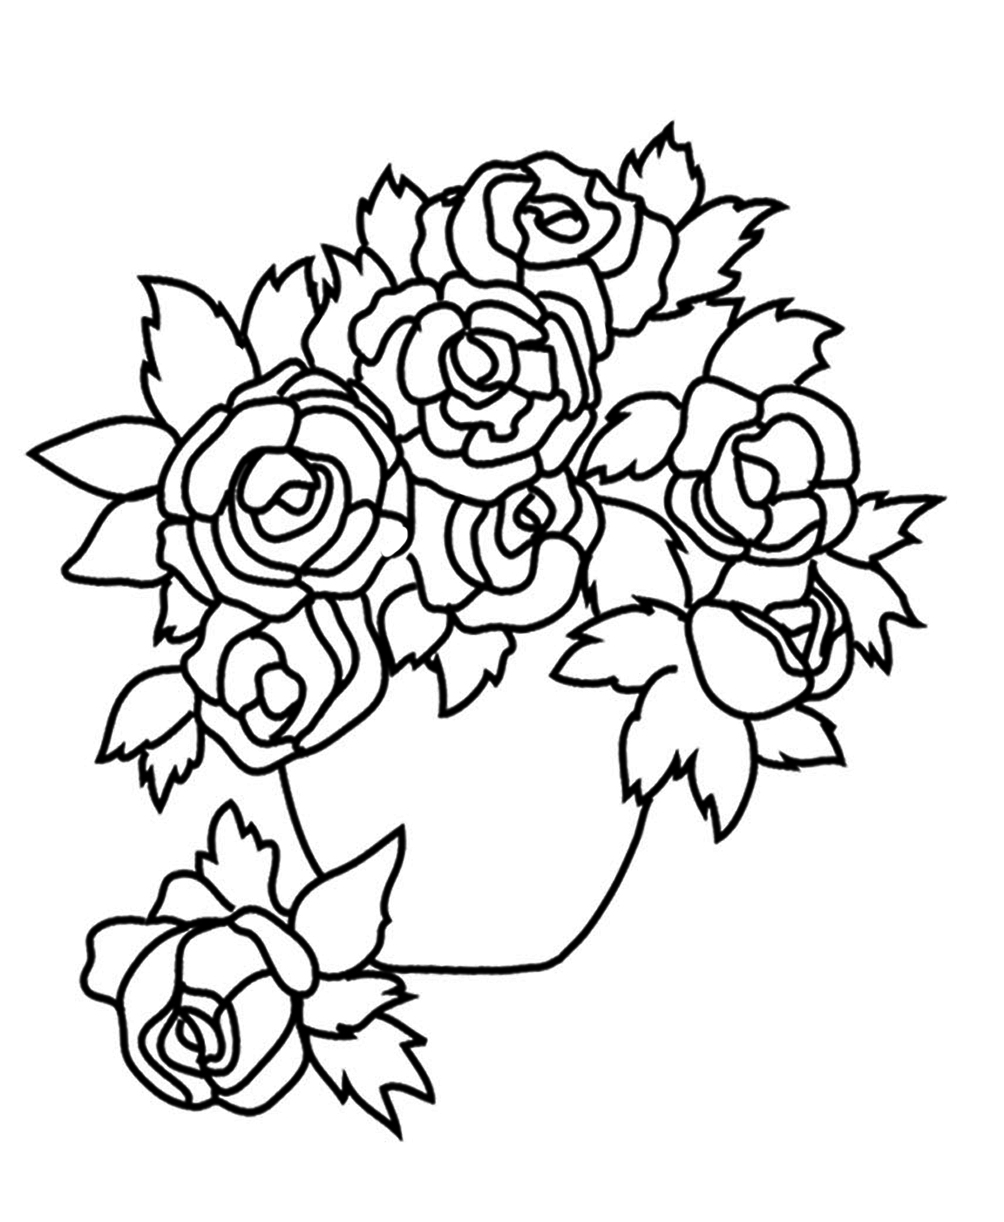 Coloring sheets roses - Flower Images With Roses Vase With Roses Sketch To Color